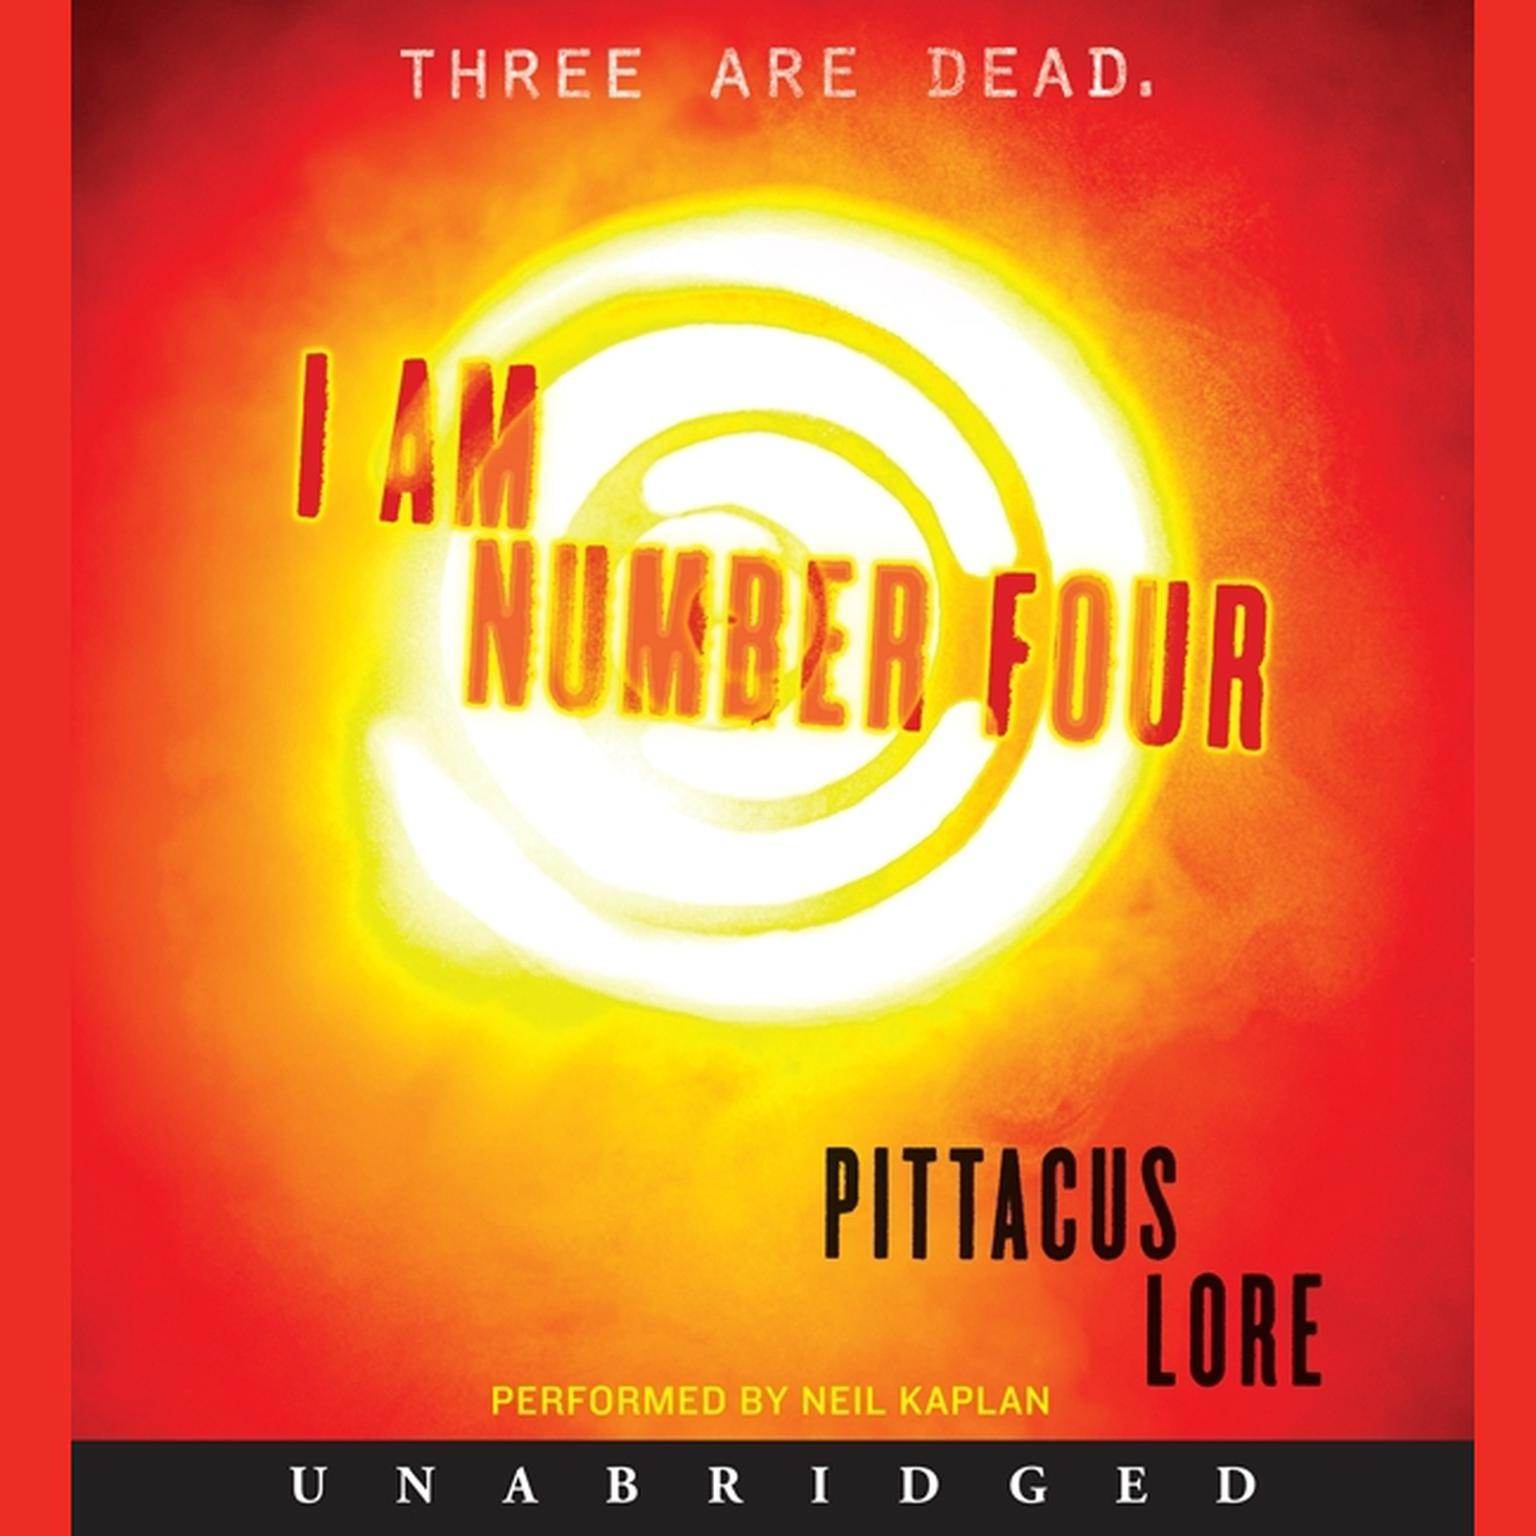 i am number four - audiobook | listen instantly!